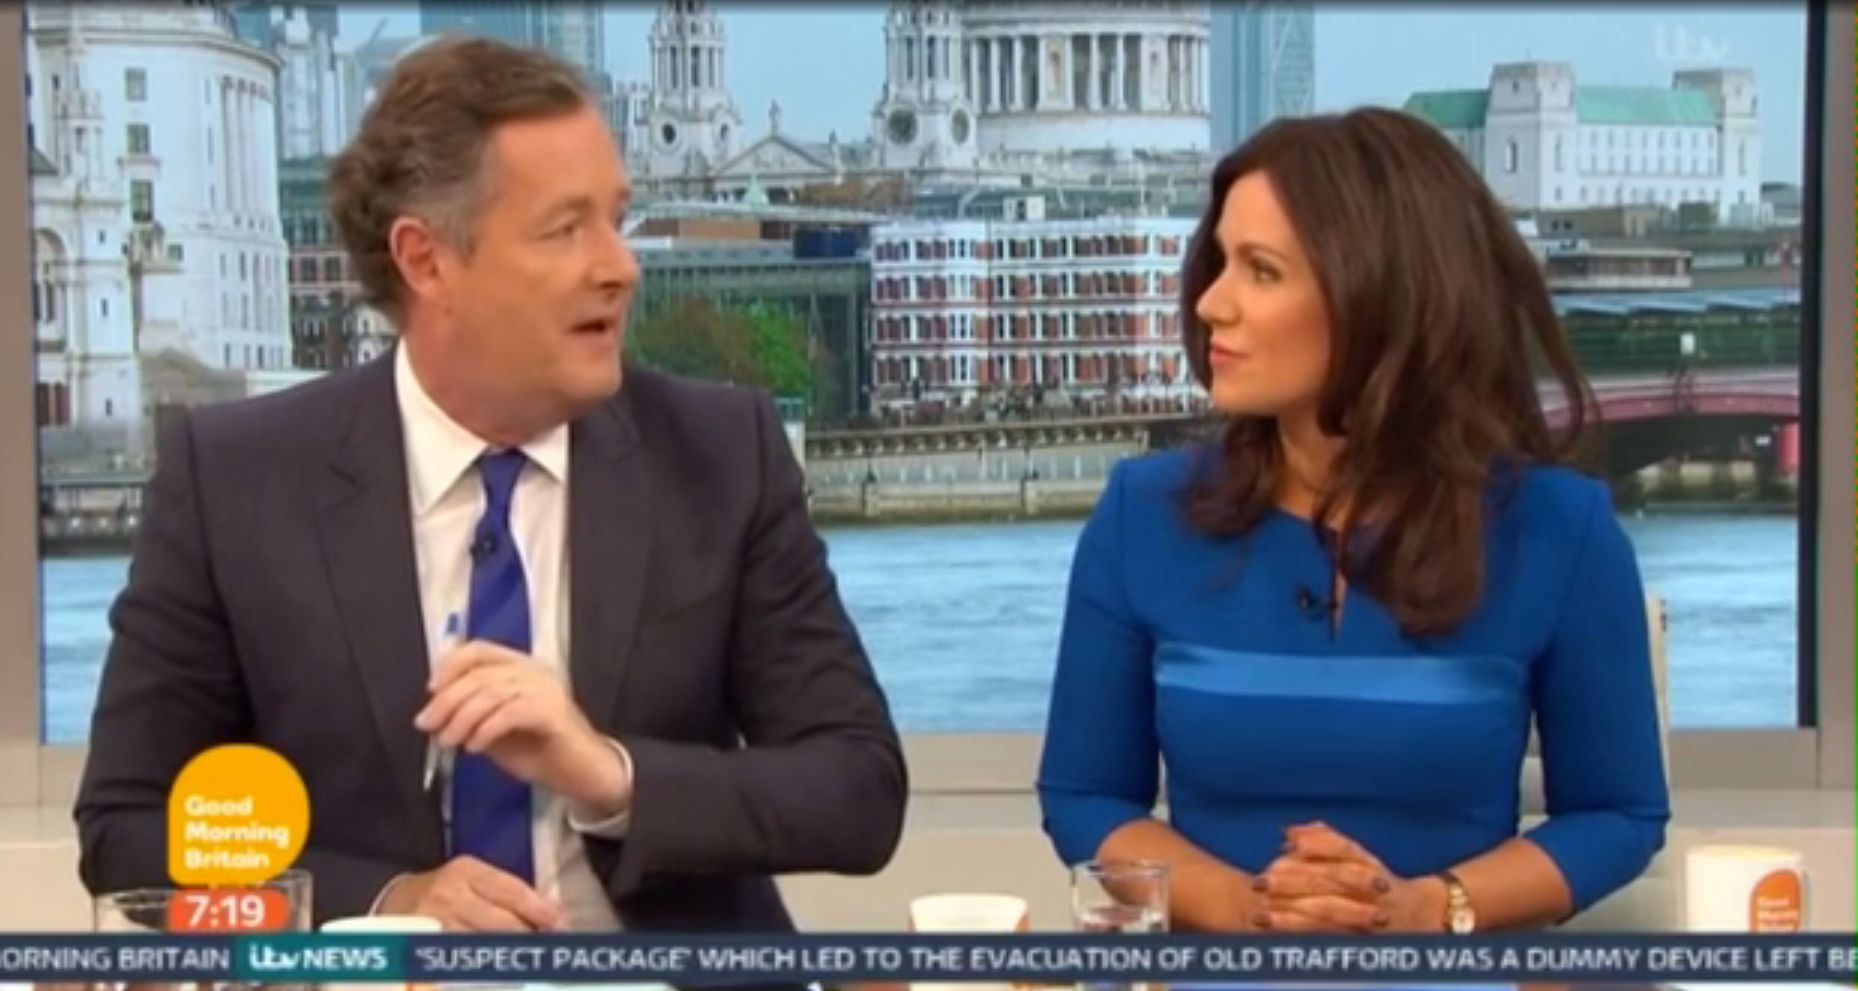 Piers Morgan and Susanna Reid clashed in Monday's